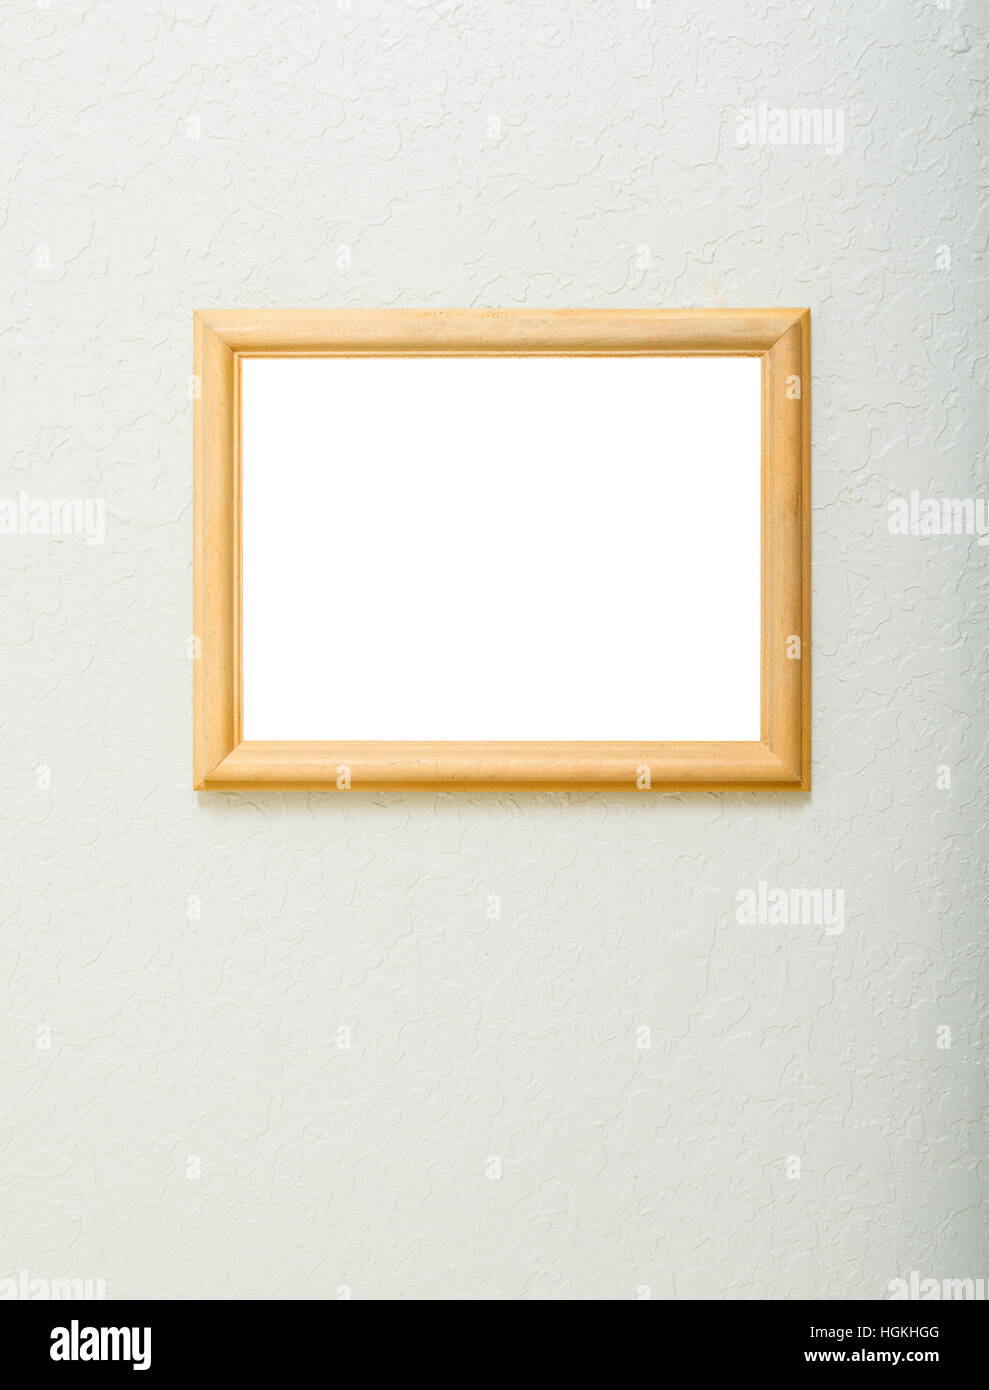 A blank wooden frame on a textured ivory background.  Room for photo or other art work in frame, with plenty of - Stock Image